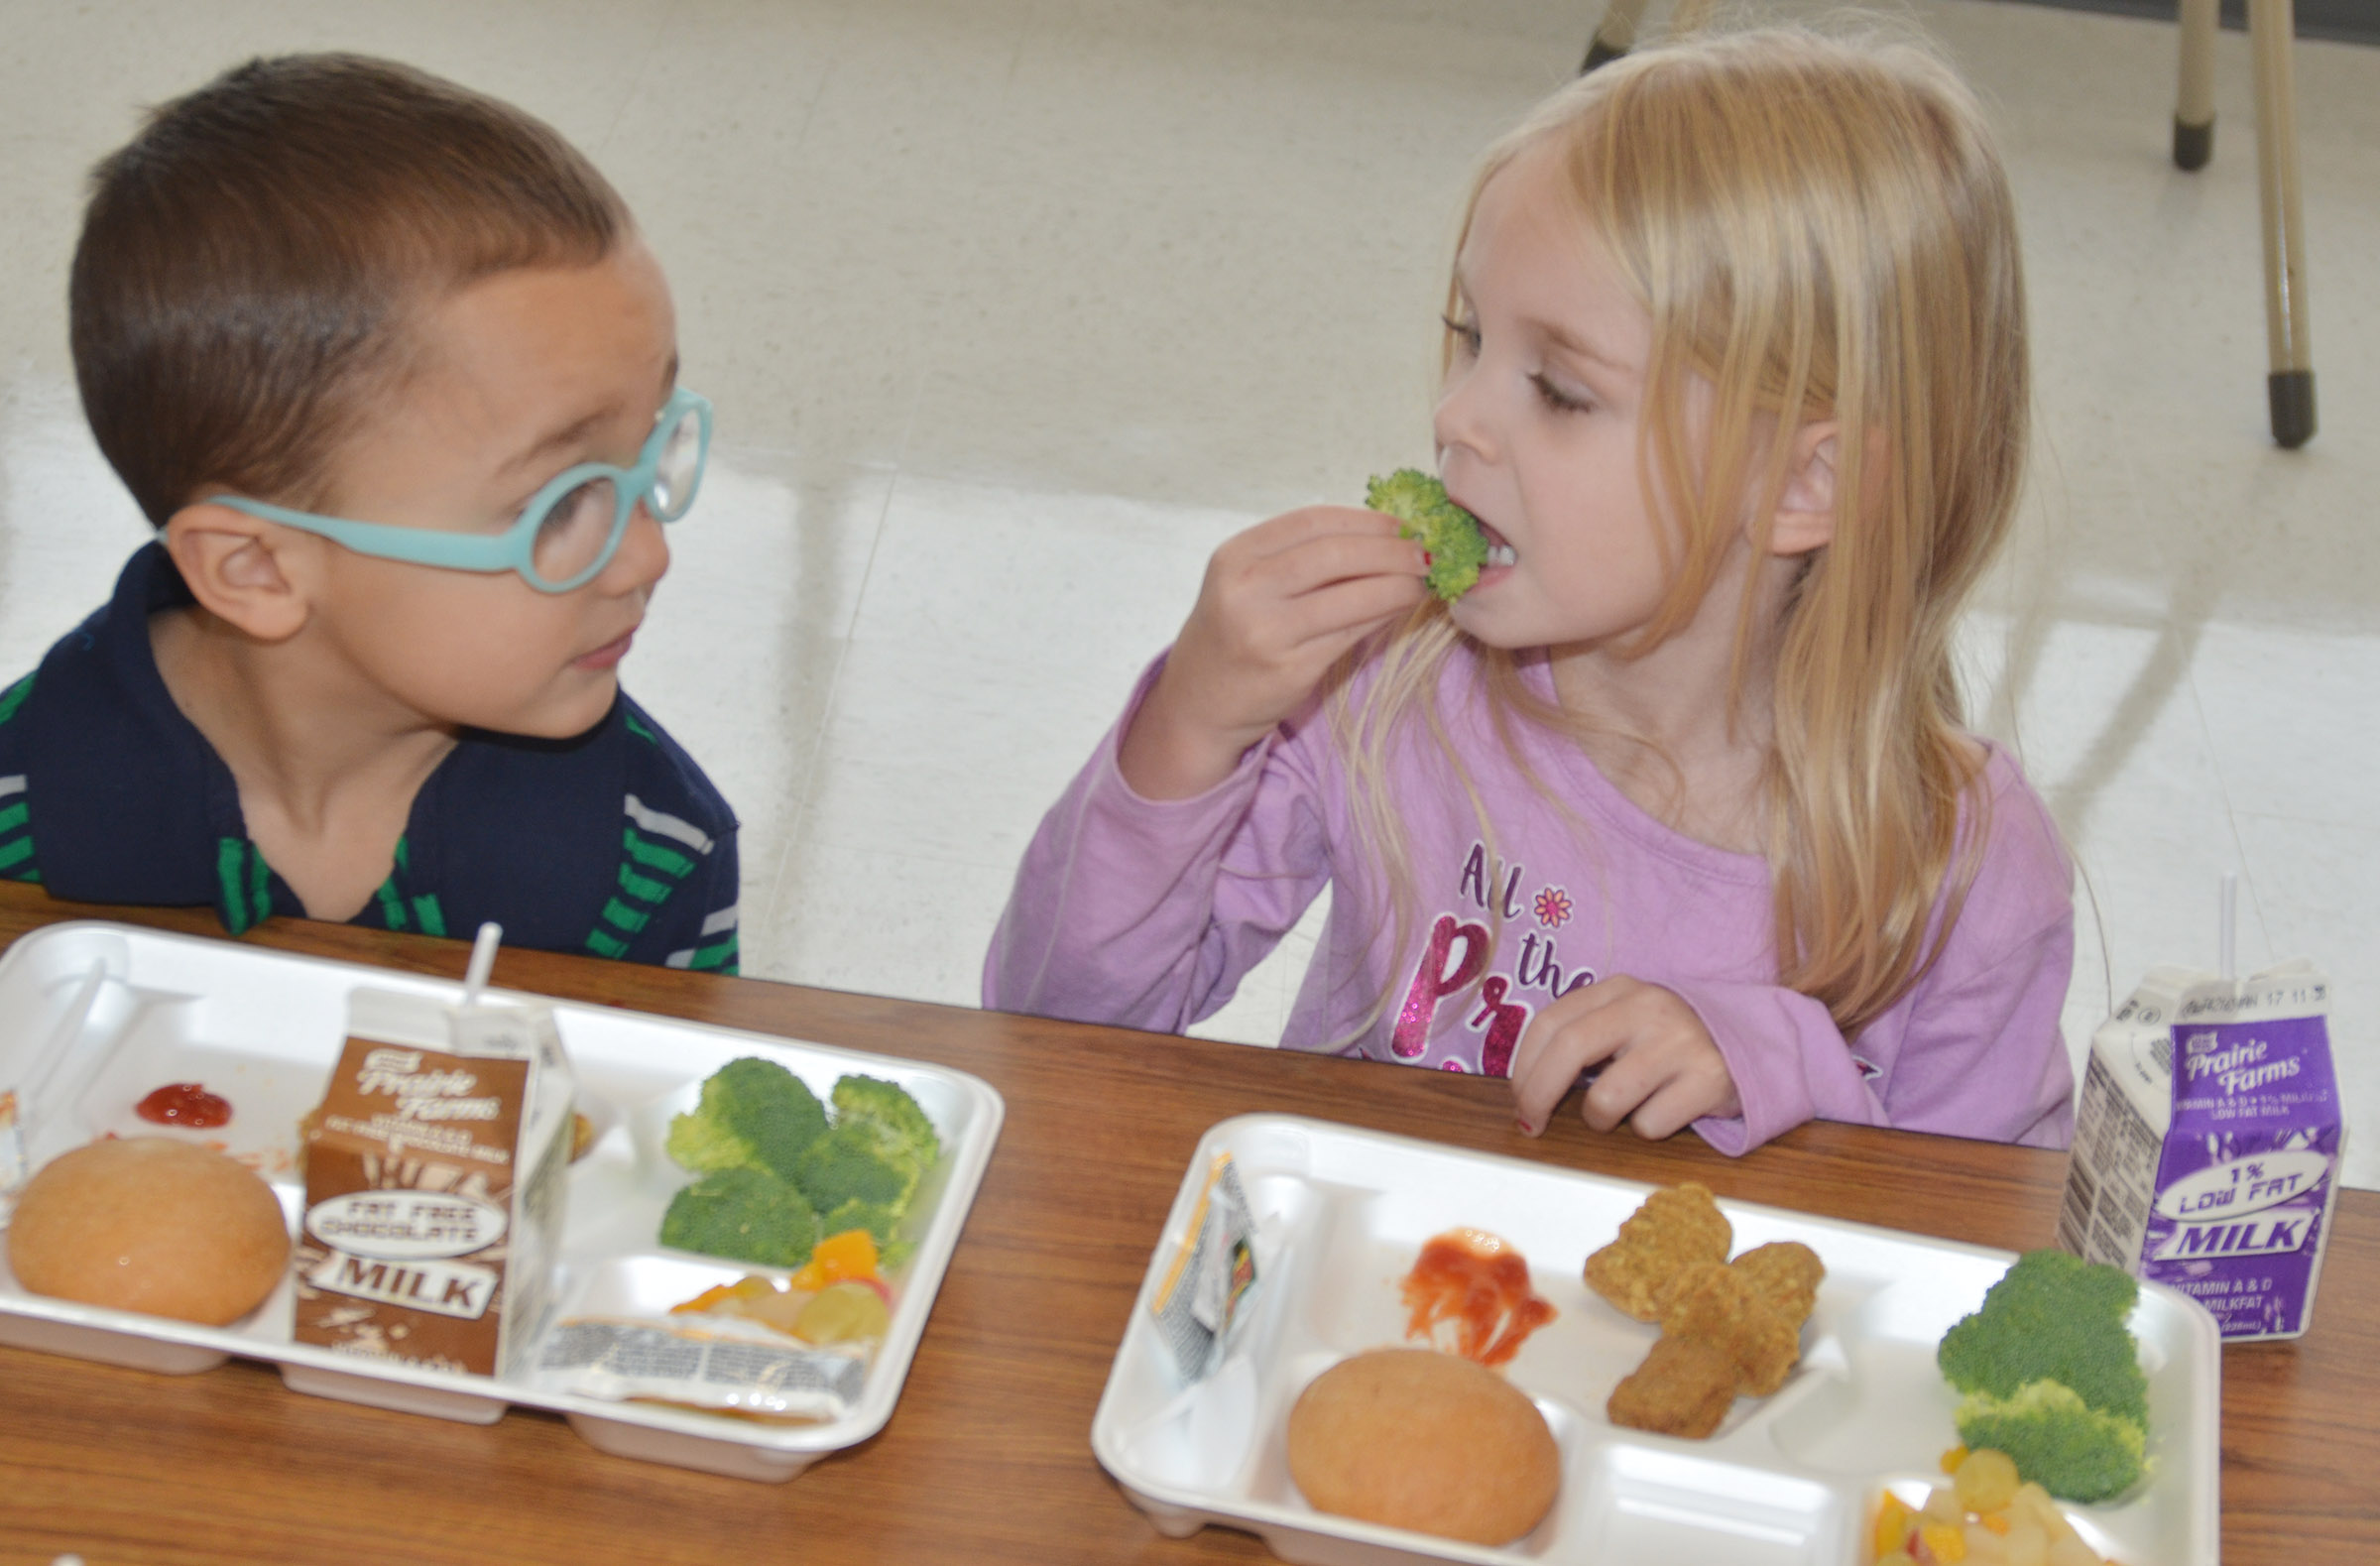 CES preschool students Chanler Mann, at left, and Alinna Bray were among the first group of students to use the school's new cafeteria.